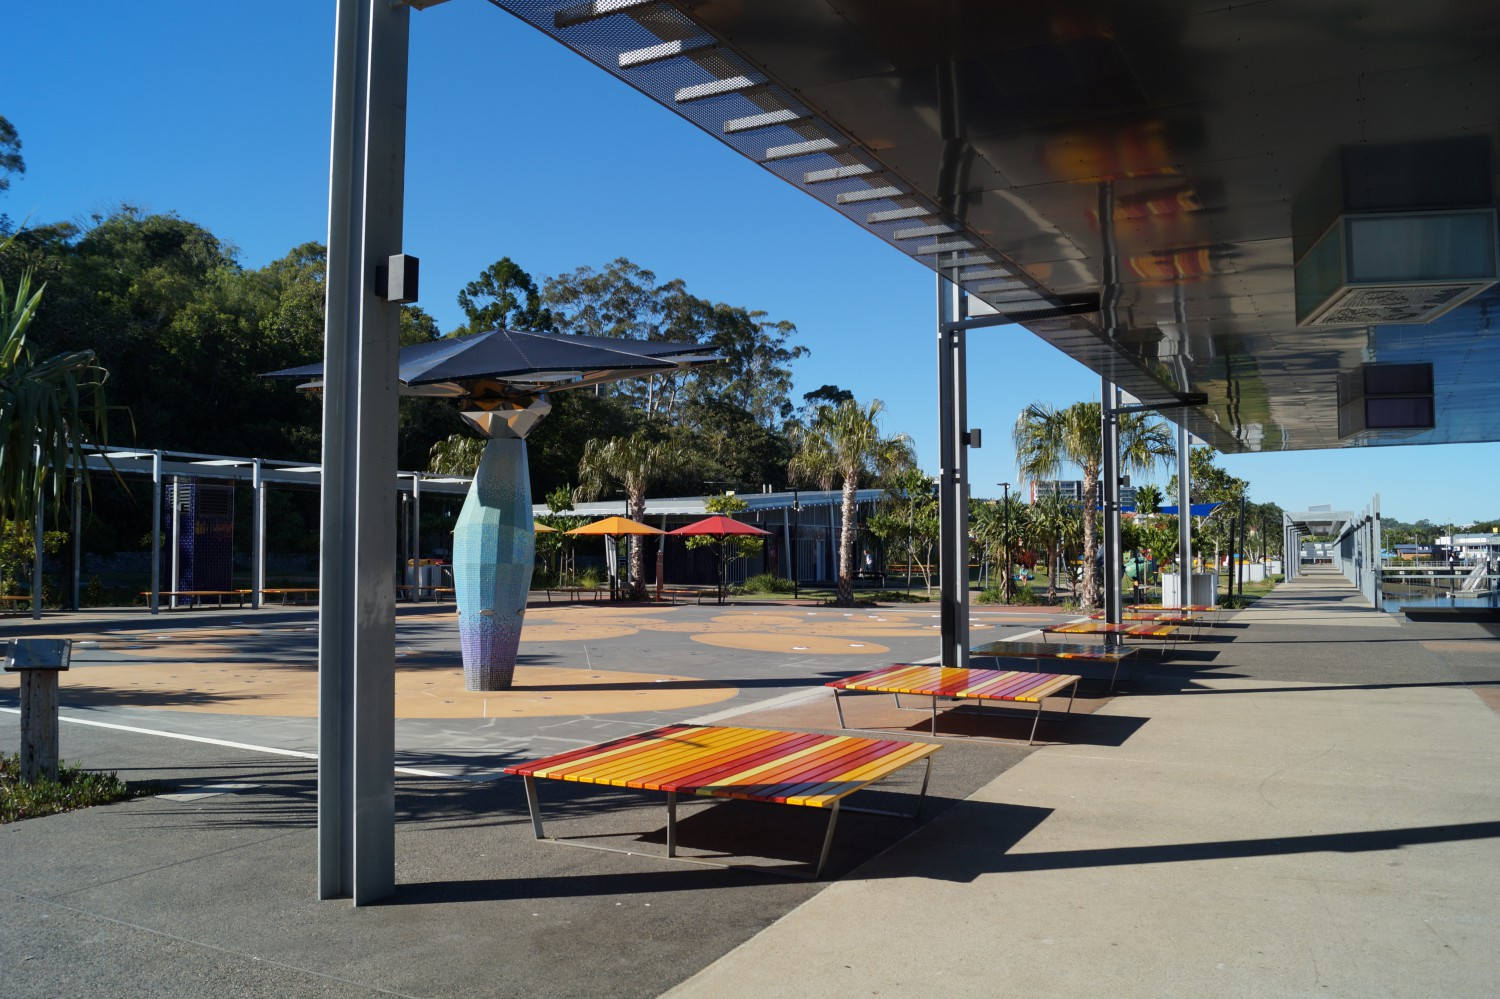 East Shores Gladstone - water park